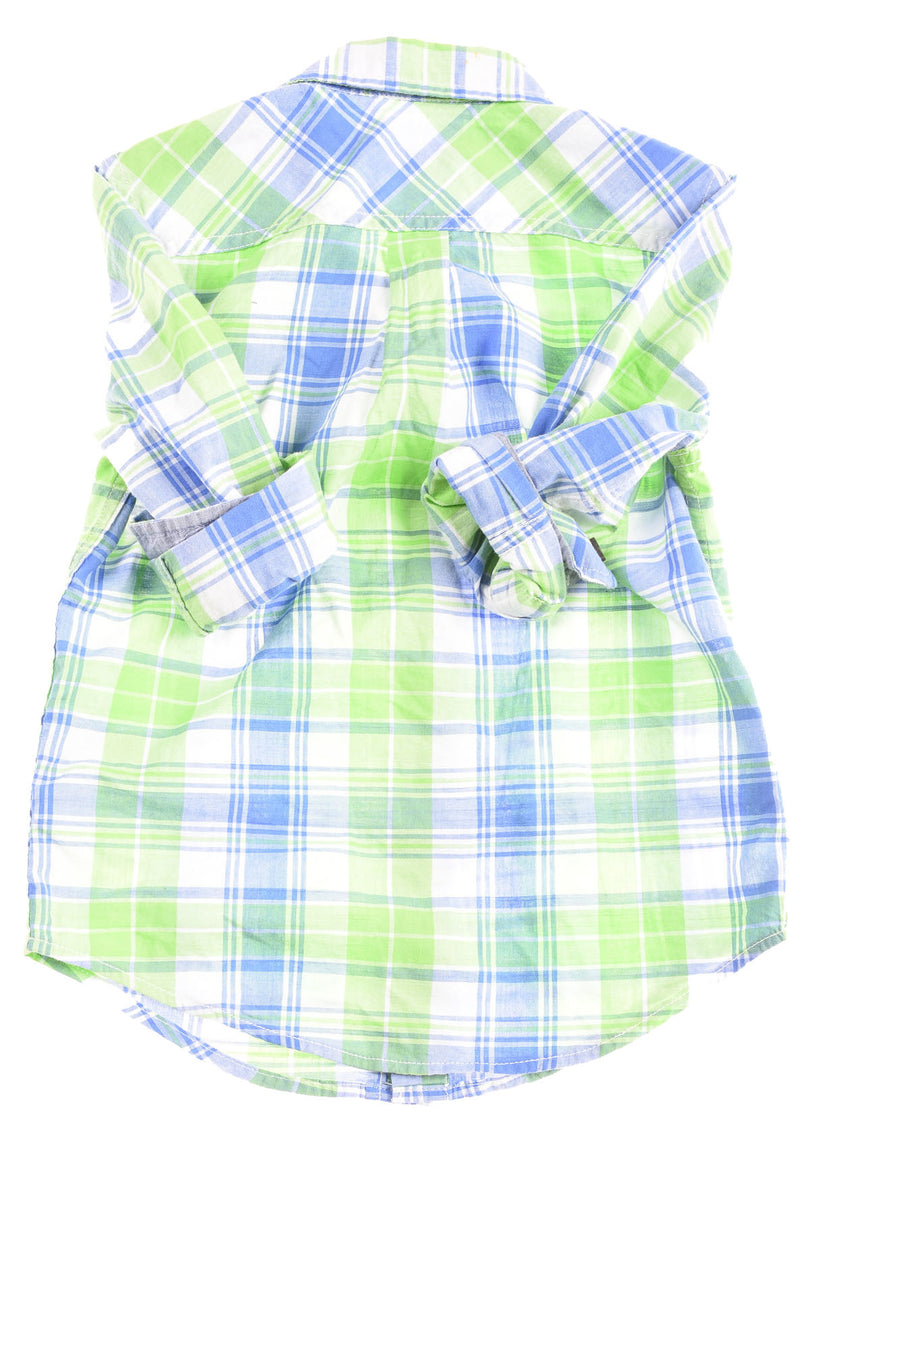 Baby Boy's Shirt By Cat & Jack